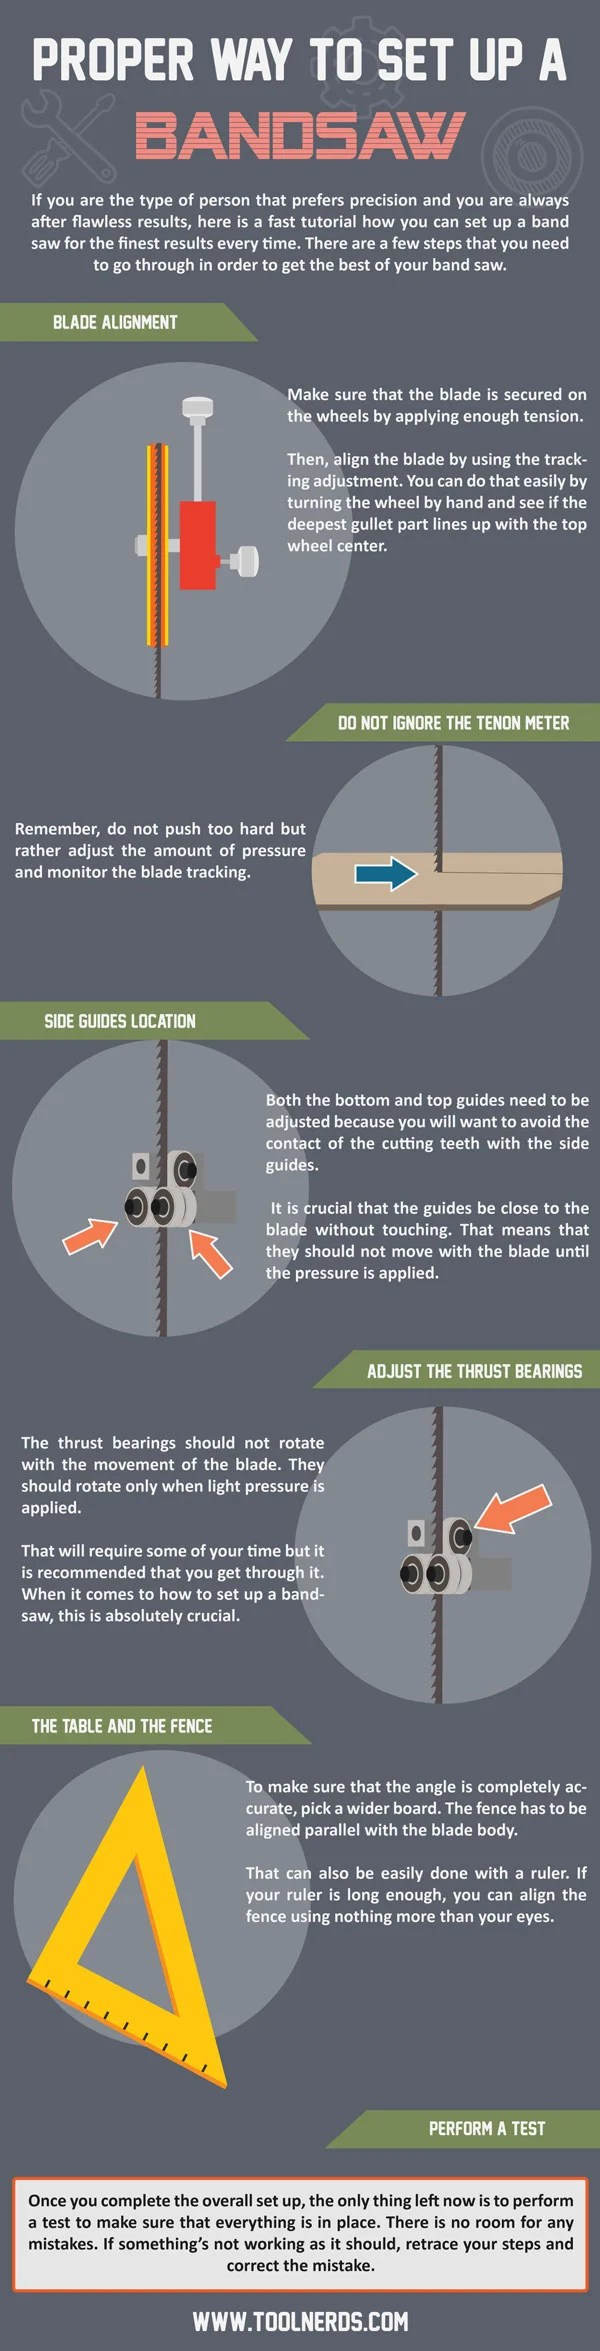 Proper Way to Set Up a Bandsaw Infographic